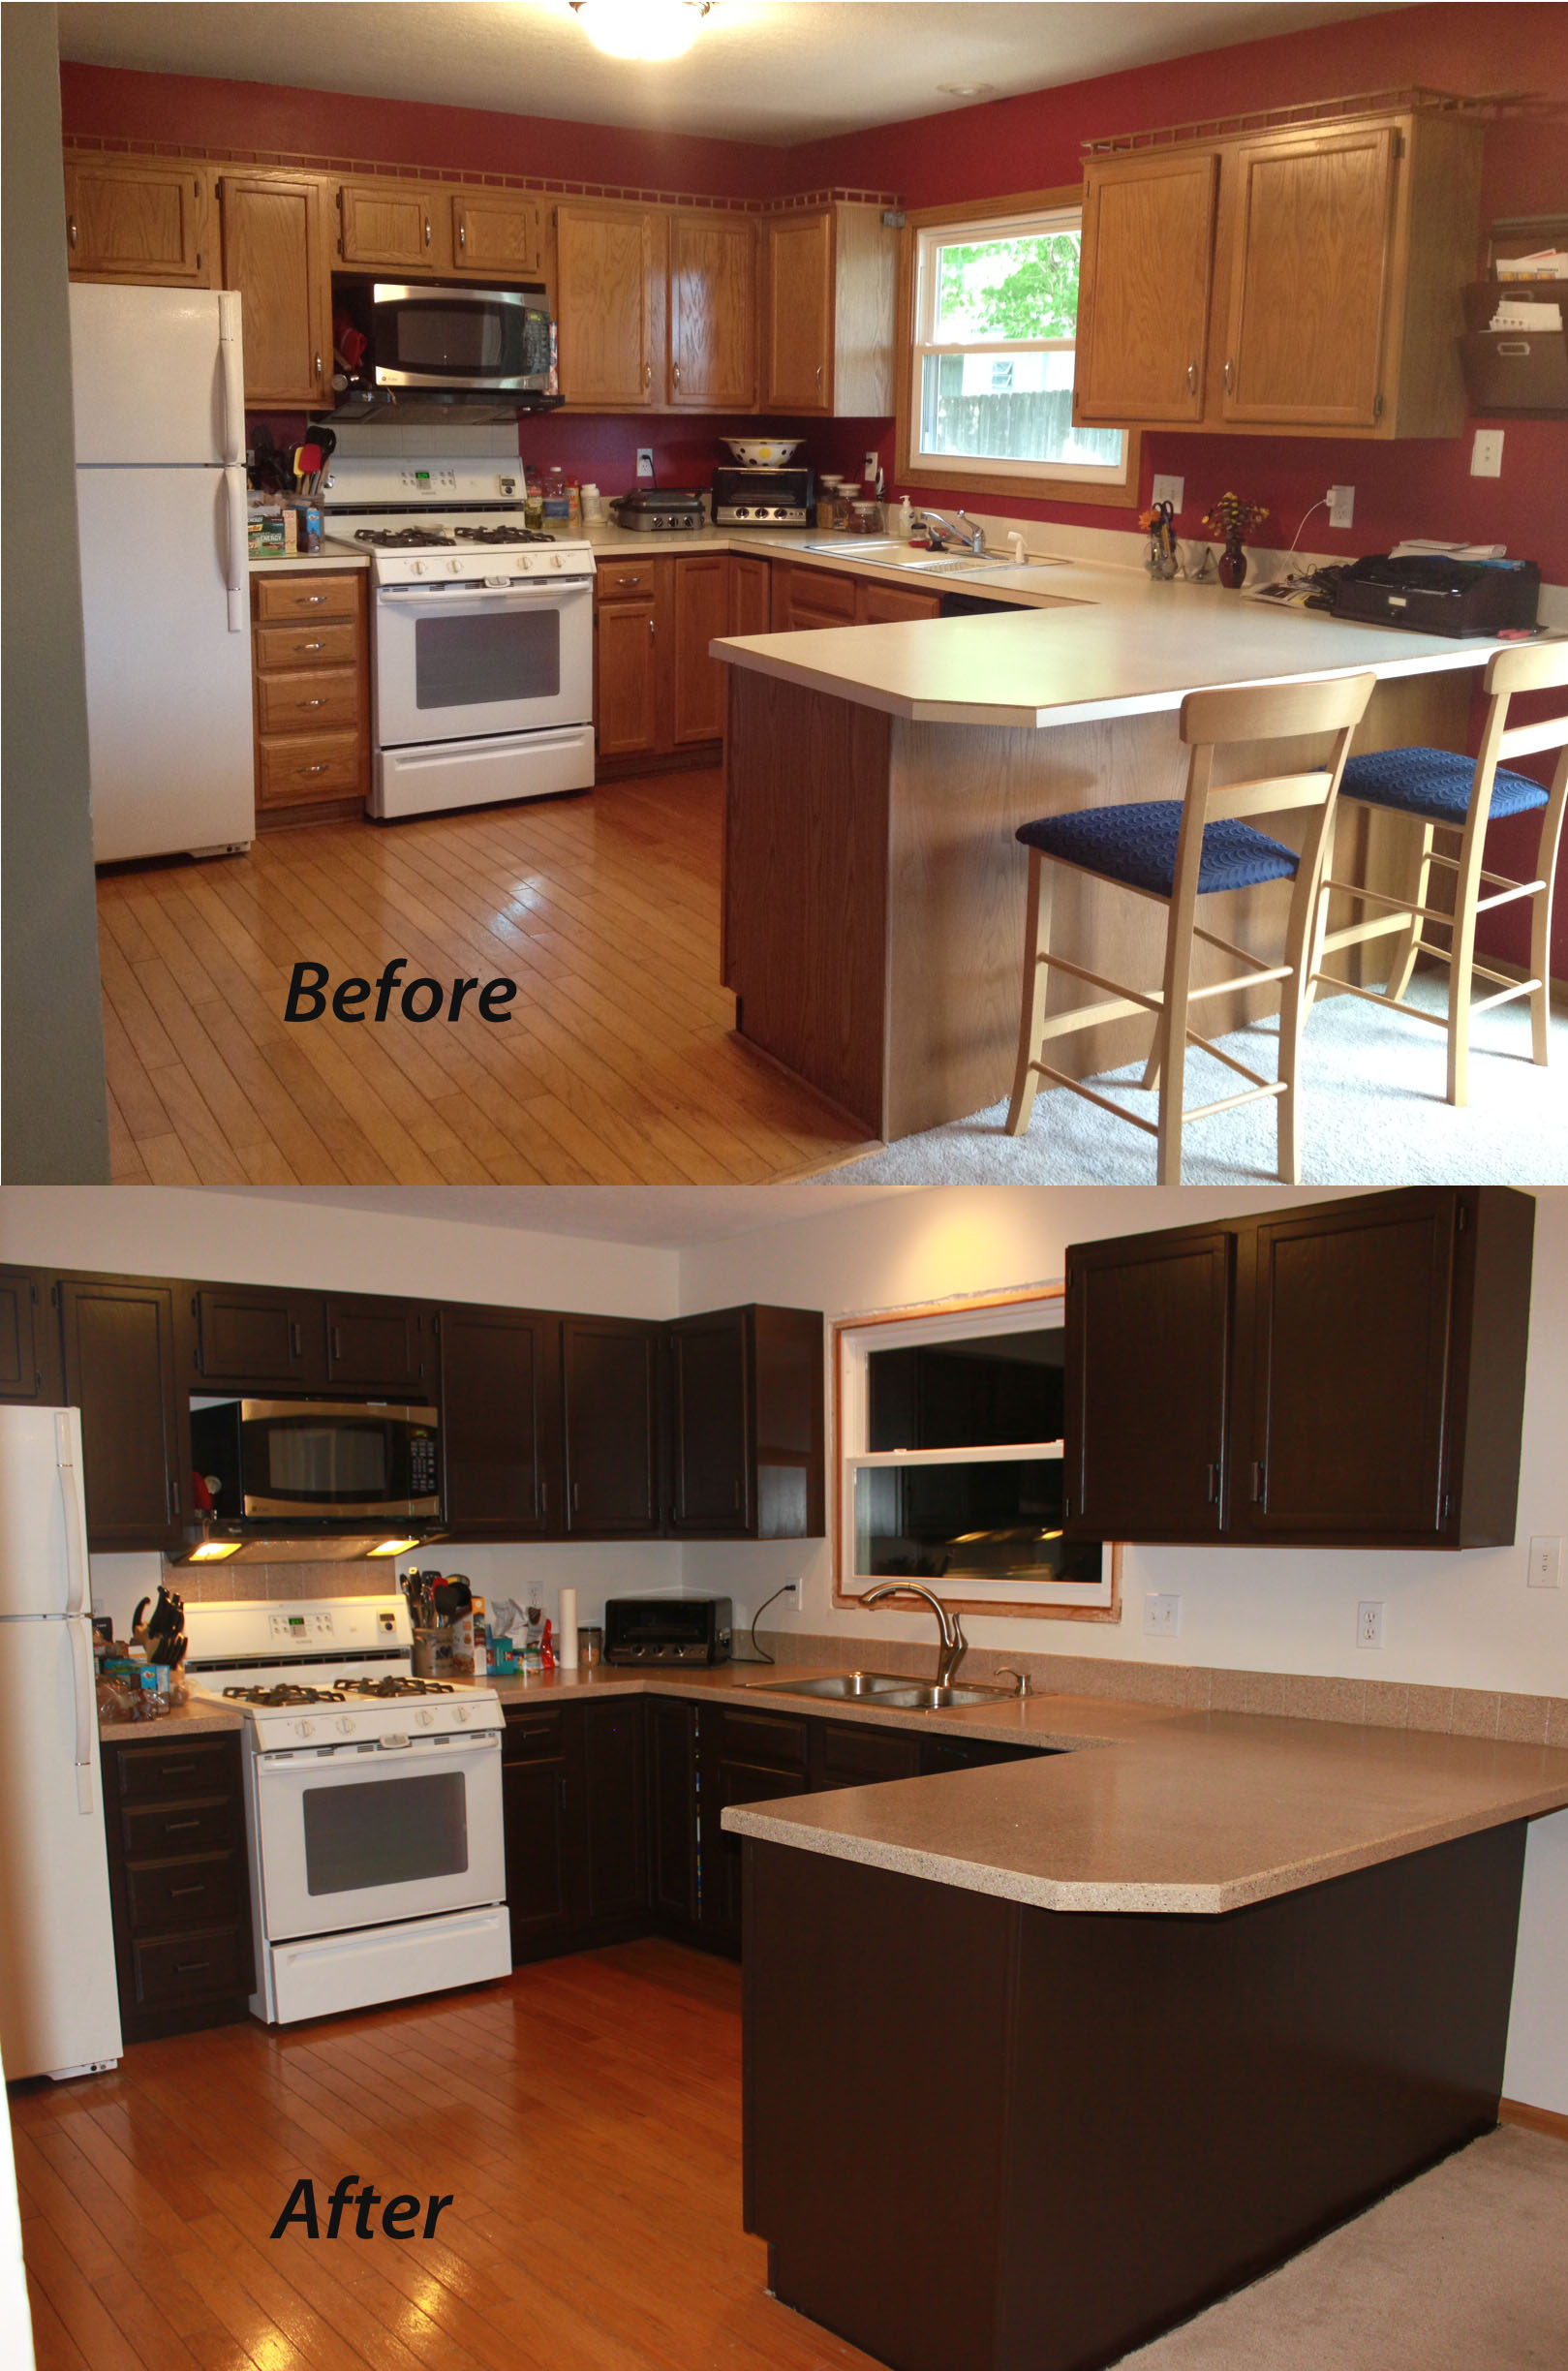 painting old kitchen cabinets before and after painting kitchen cabinets sometimes 24526